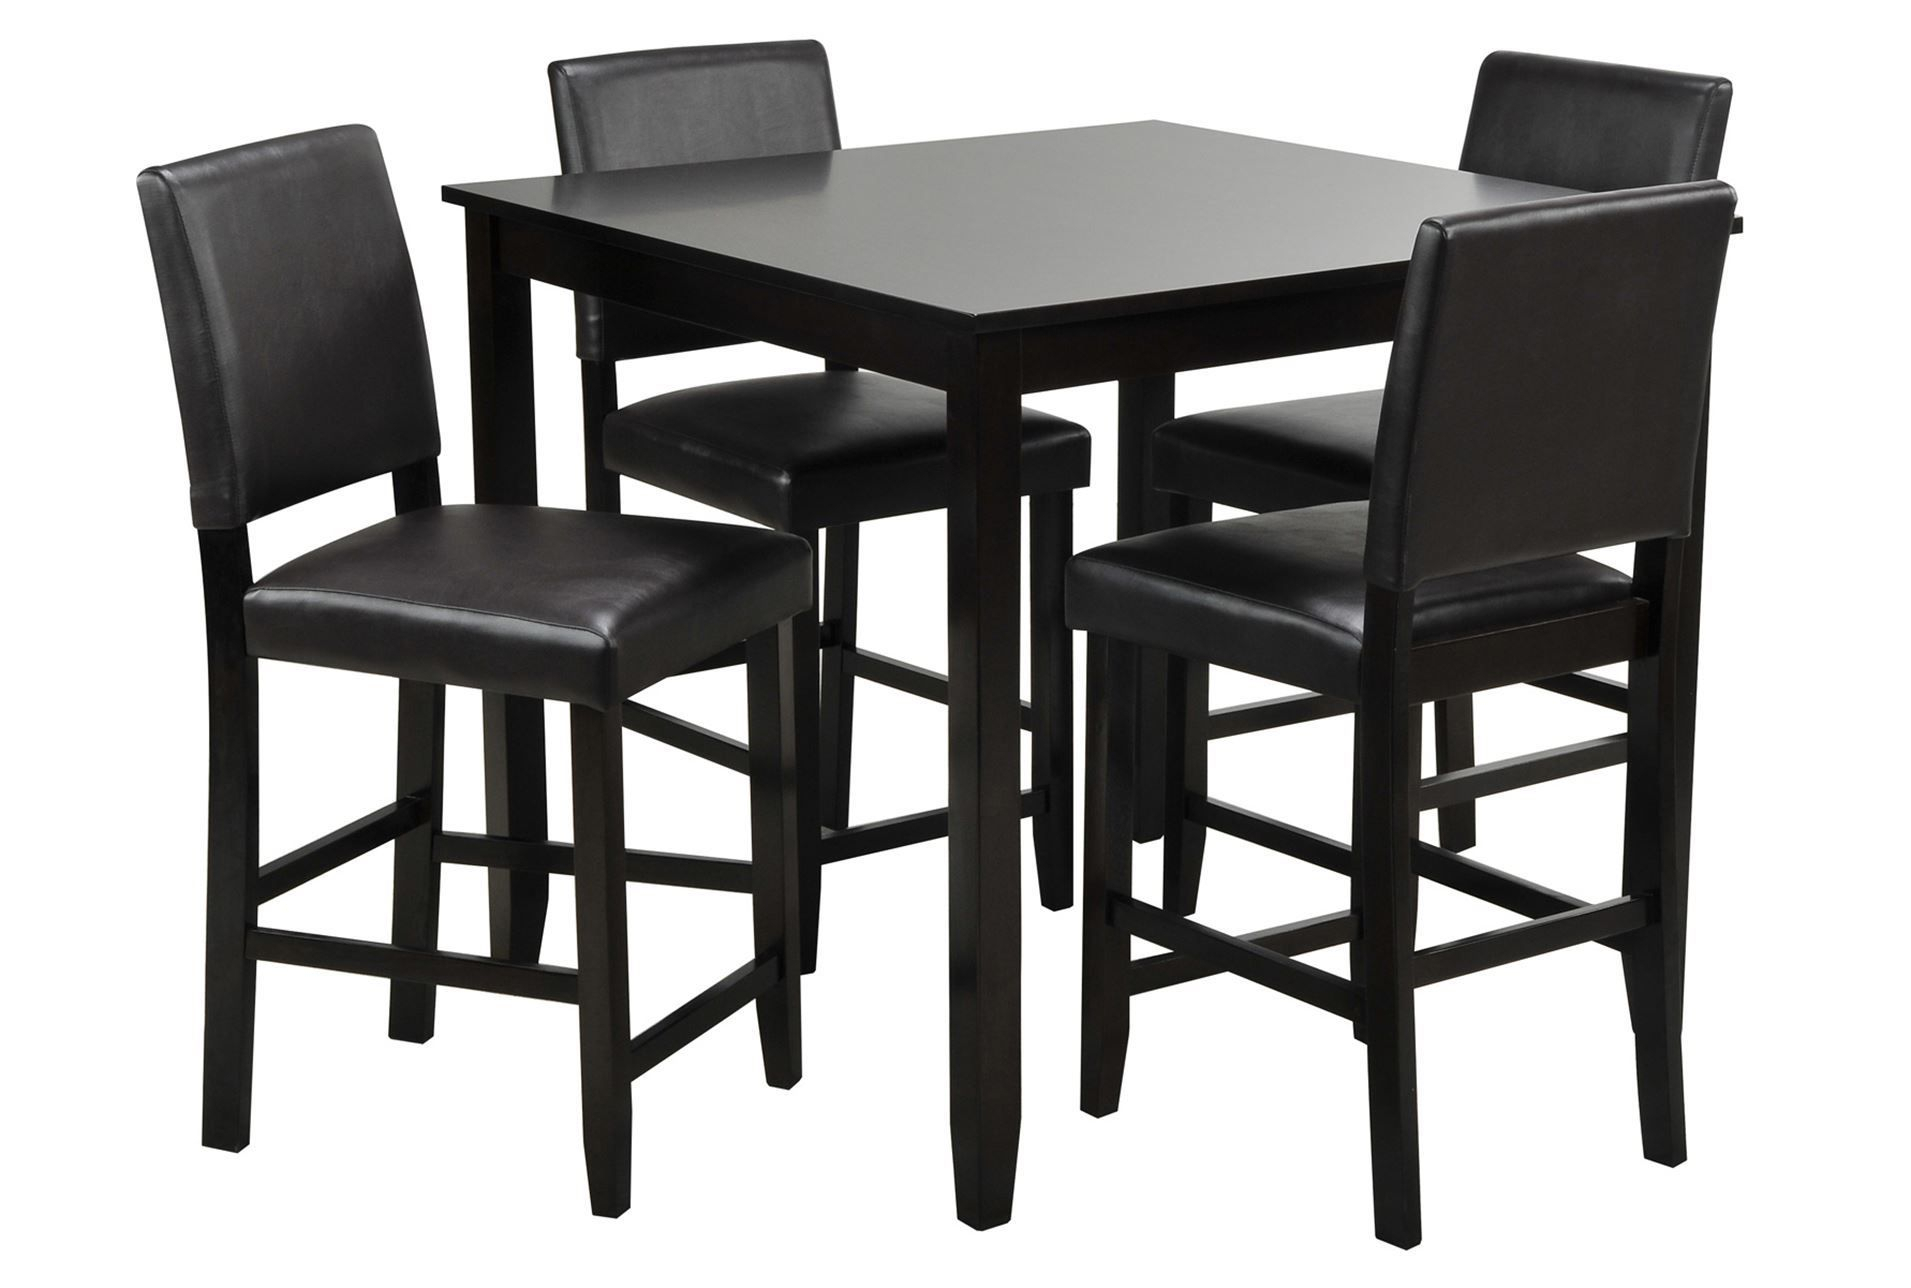 Jarrod 5 Piece Counter Set | Home – | Counter, Home Decor, Furniture Within Most Up To Date Jarrod 5 Piece Dining Sets (View 6 of 20)